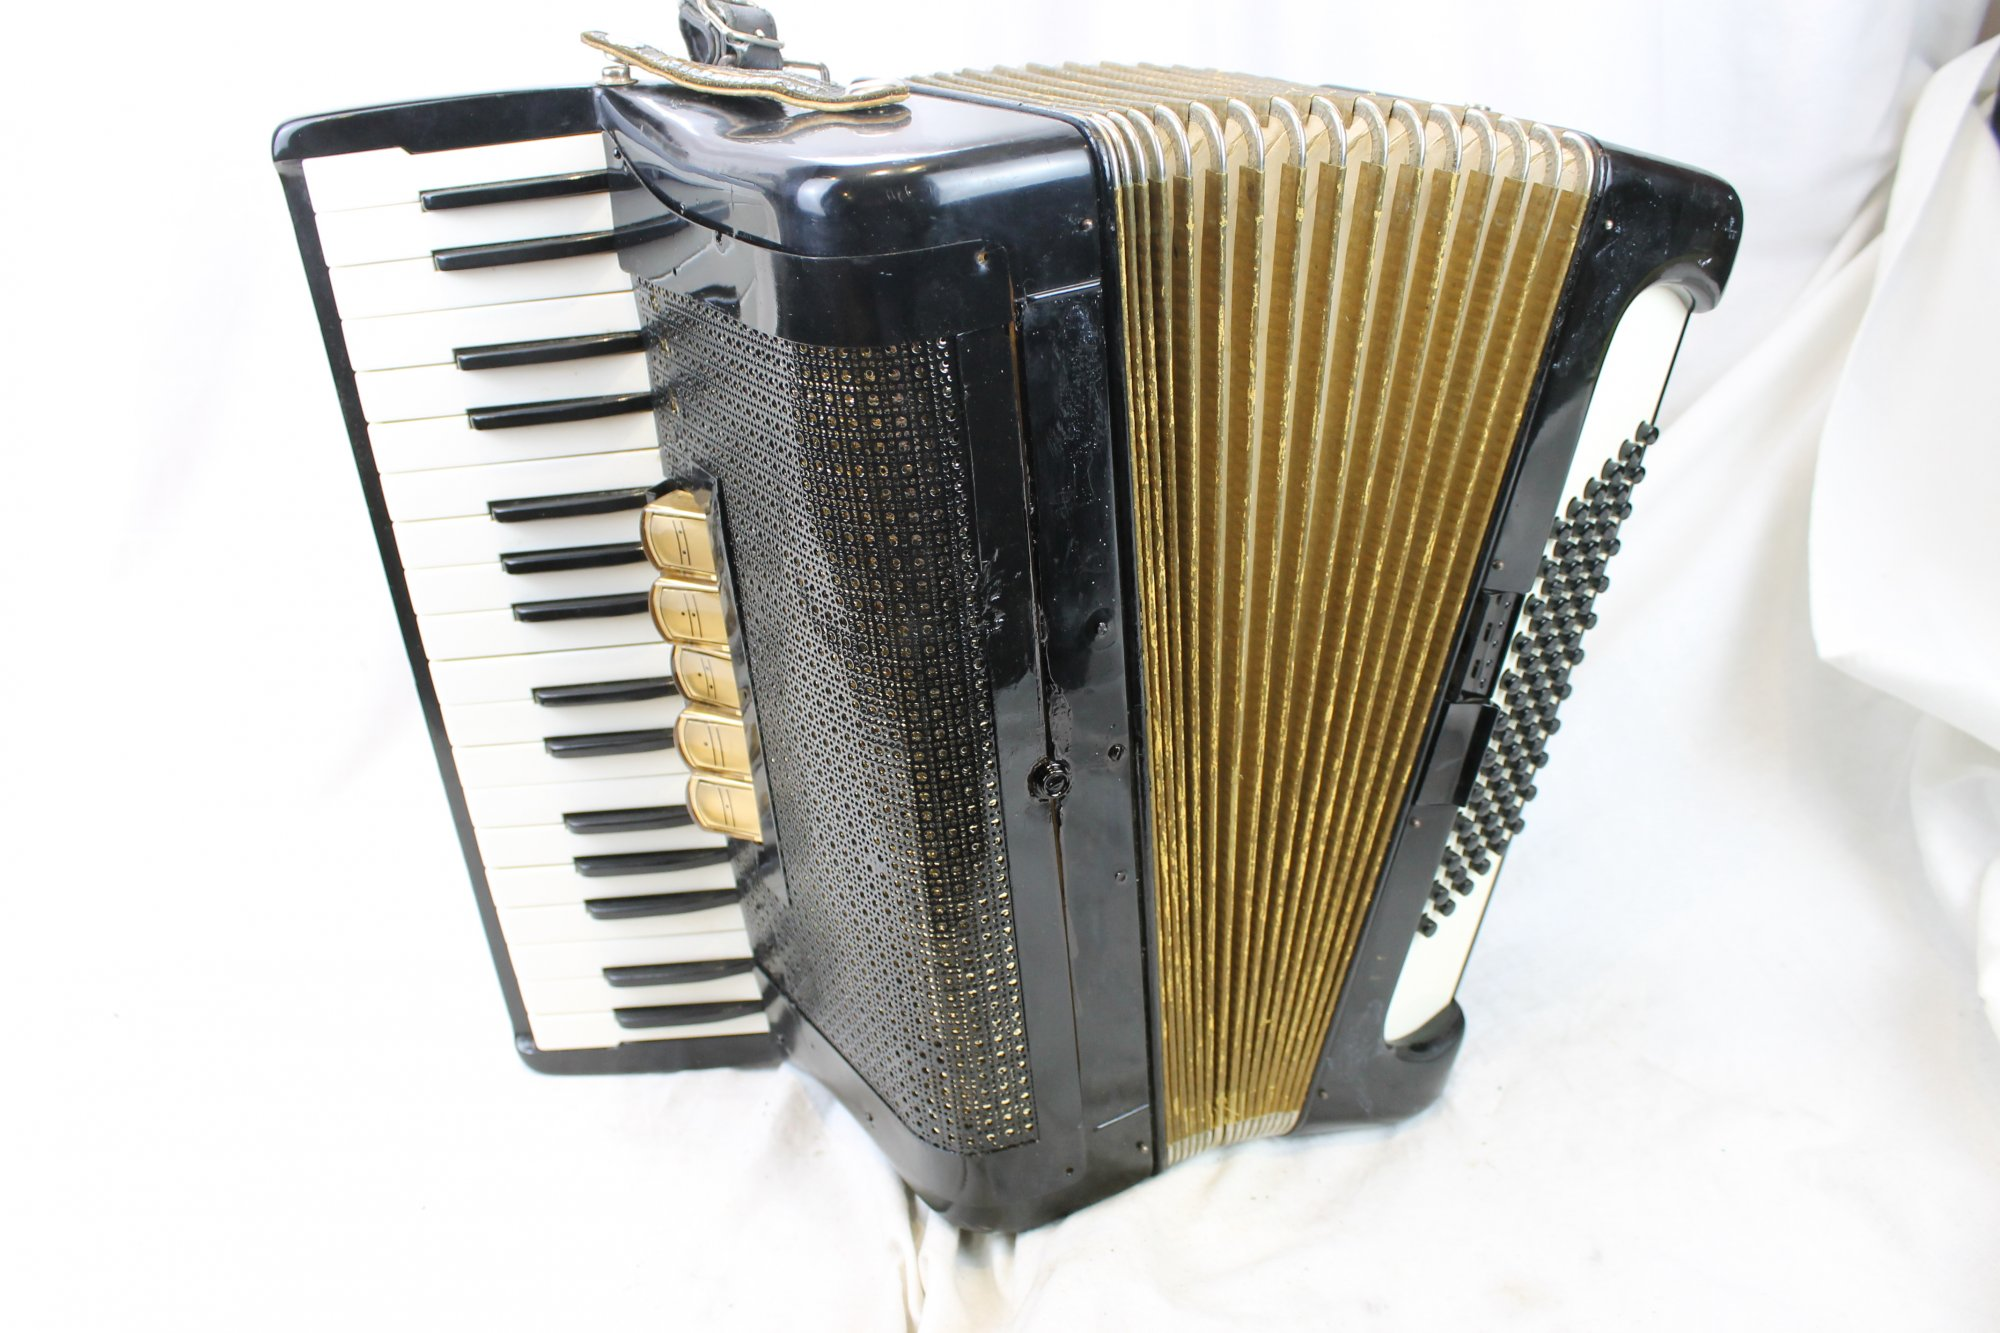 3446 - Black Hohner Concerto III Piano Accordion LMM 34 72